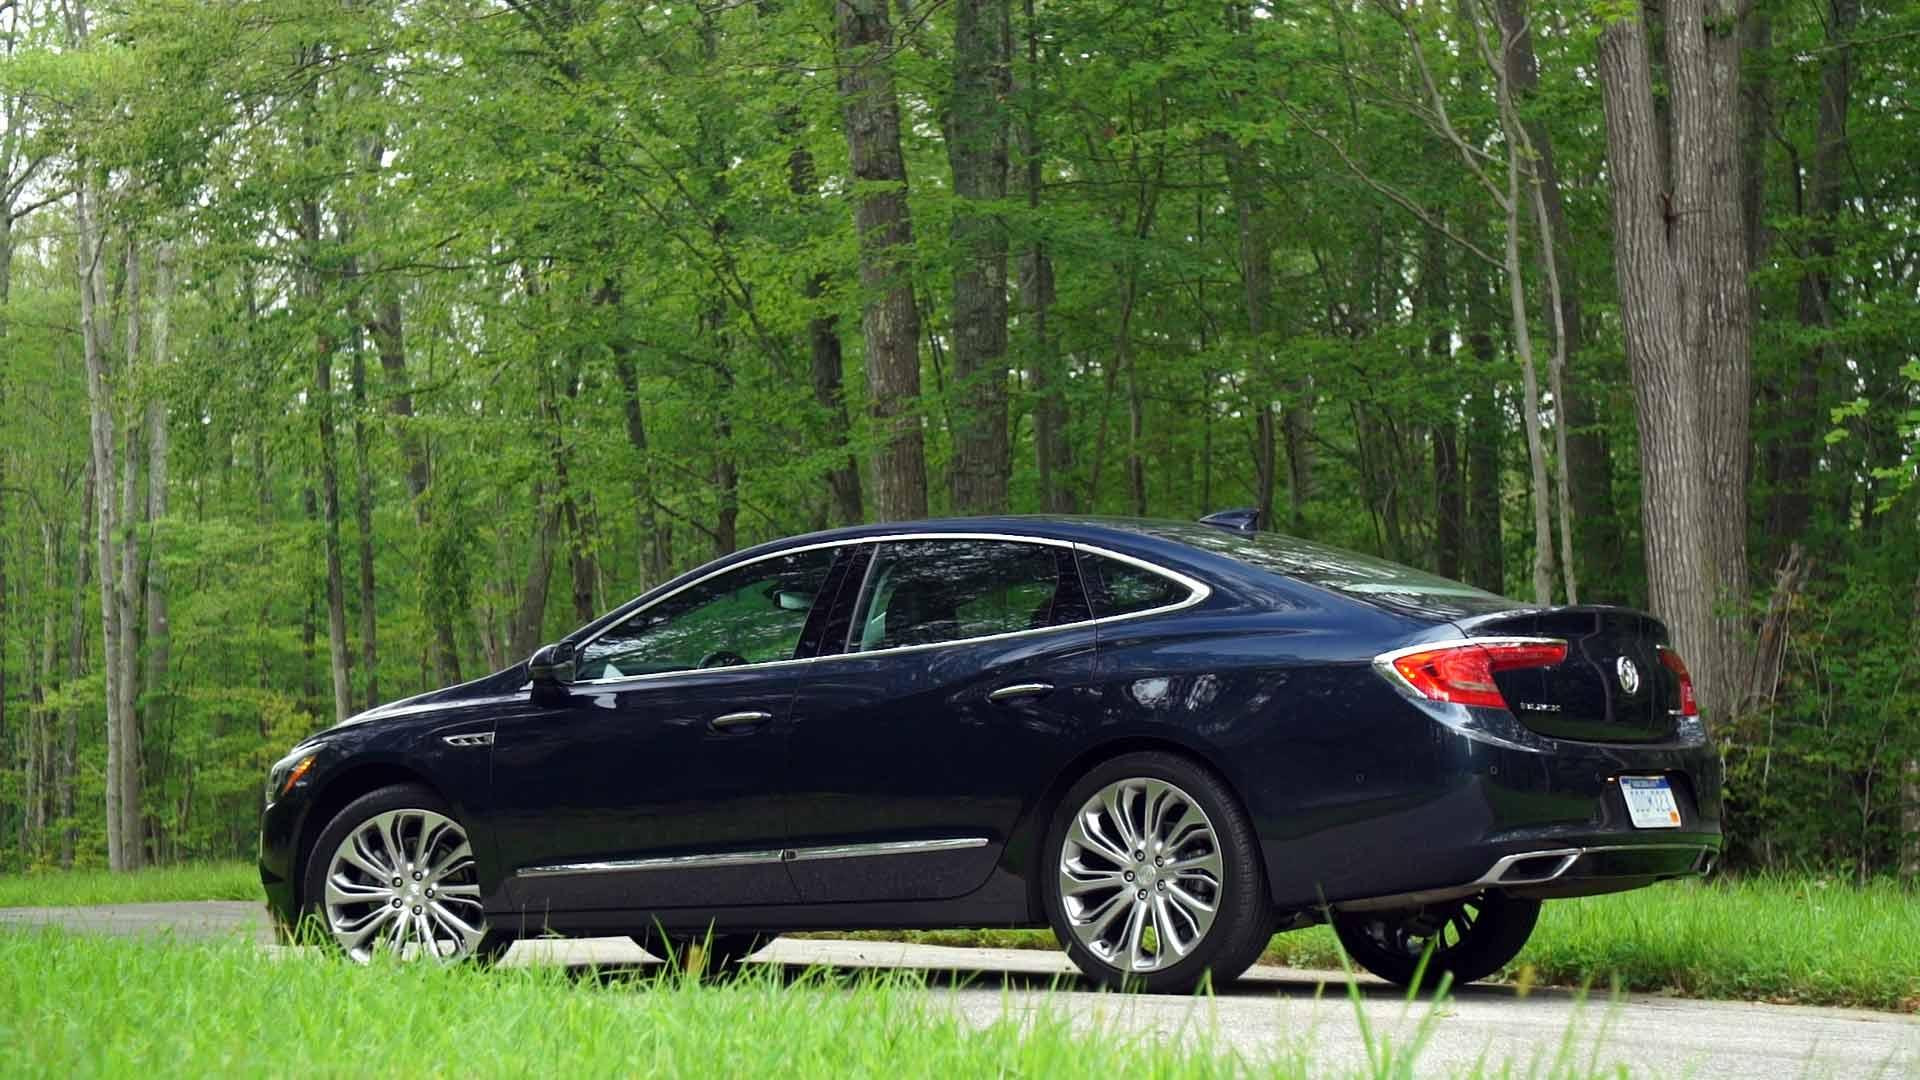 2018 Buick LaCrosse Reviews Ratings Prices Consumer Reports